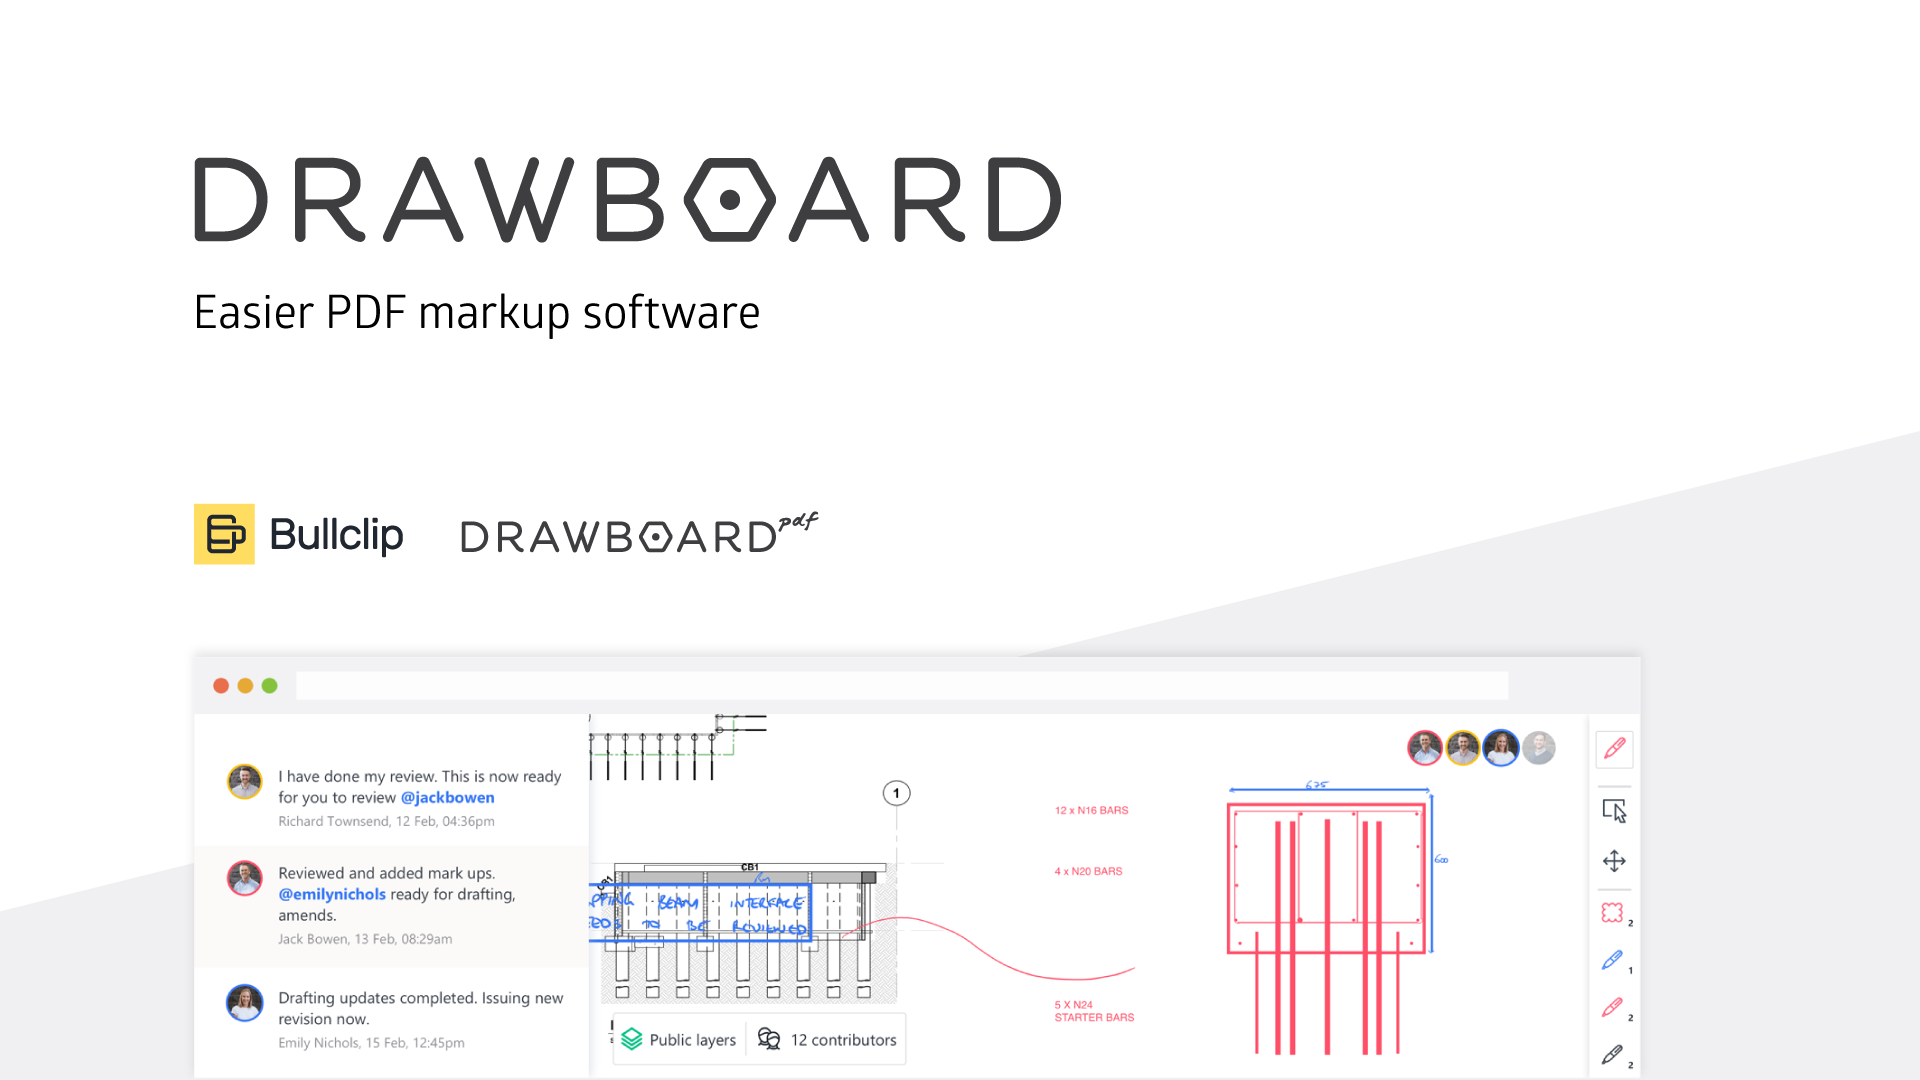 Drawboard Creates Easier Pdf Markup Software We Are Leading The Way In Digital Ink And Markup Collaboration For Architecture Digital Ink The Creator Software